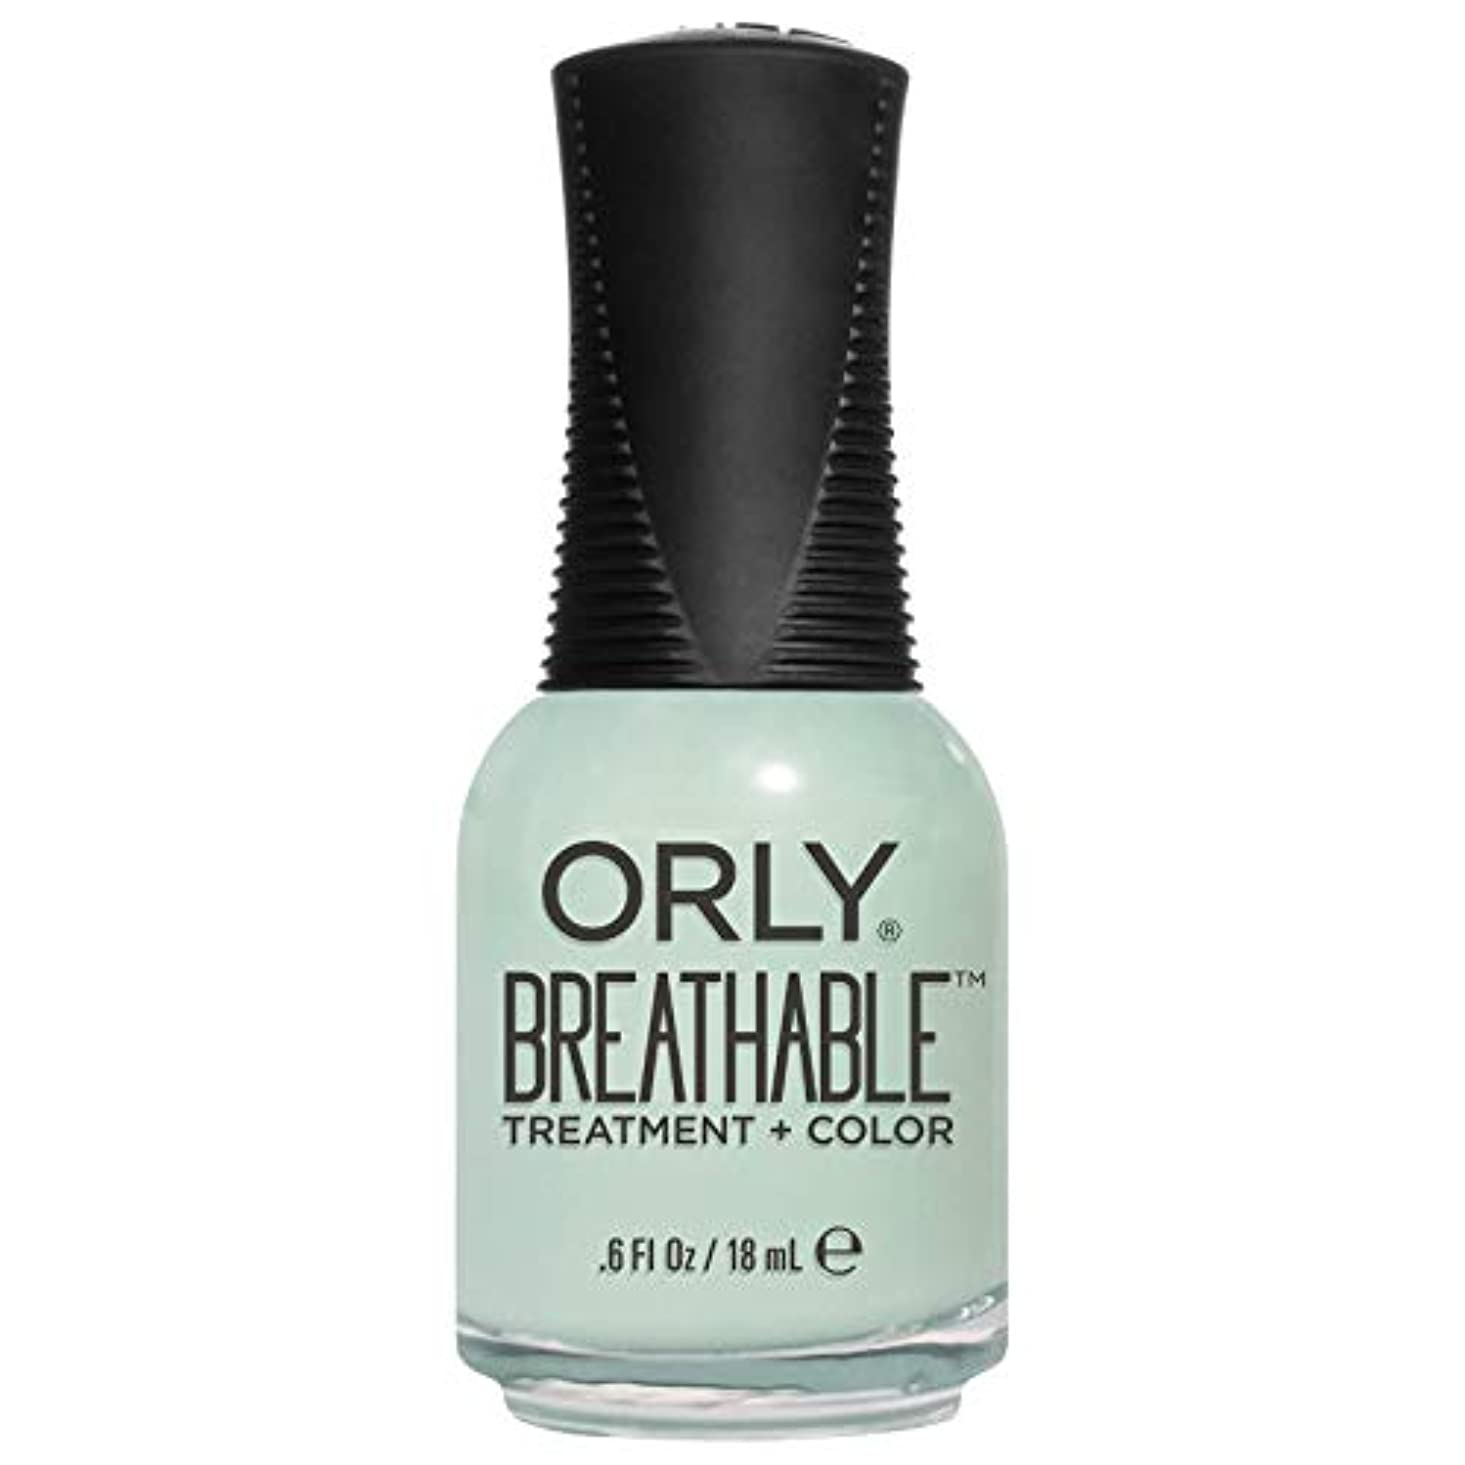 Orly Breathable Treatment + Color Nail Lacquer - Fresh Start - 0.6oz/18ml